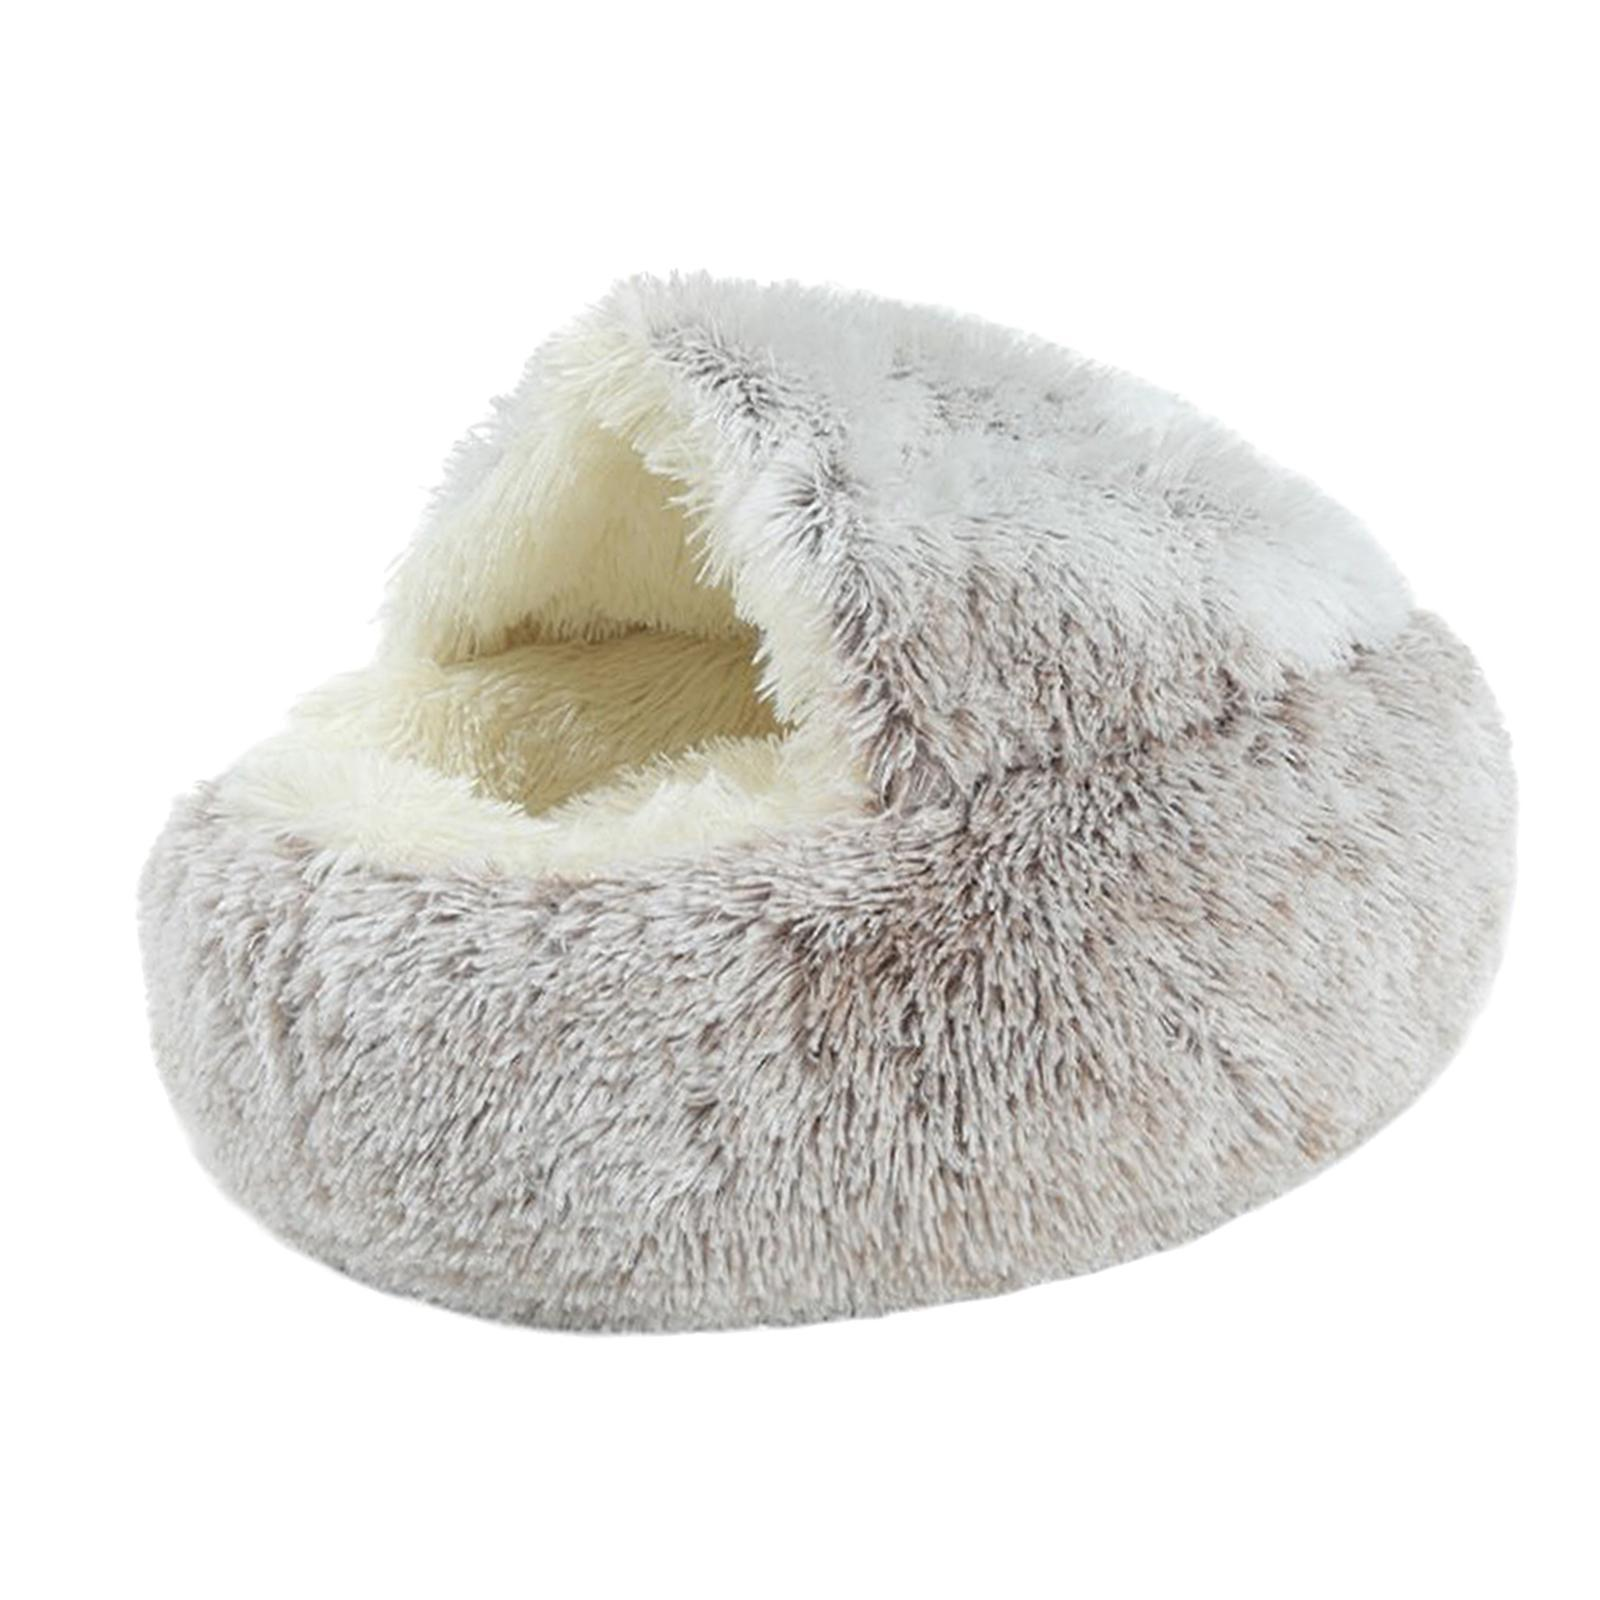 thumbnail 45 - Plush Pet Dog Cat Bed Fluffy Soft Warm Calming Bed Sleeping Kennel Cave Nest